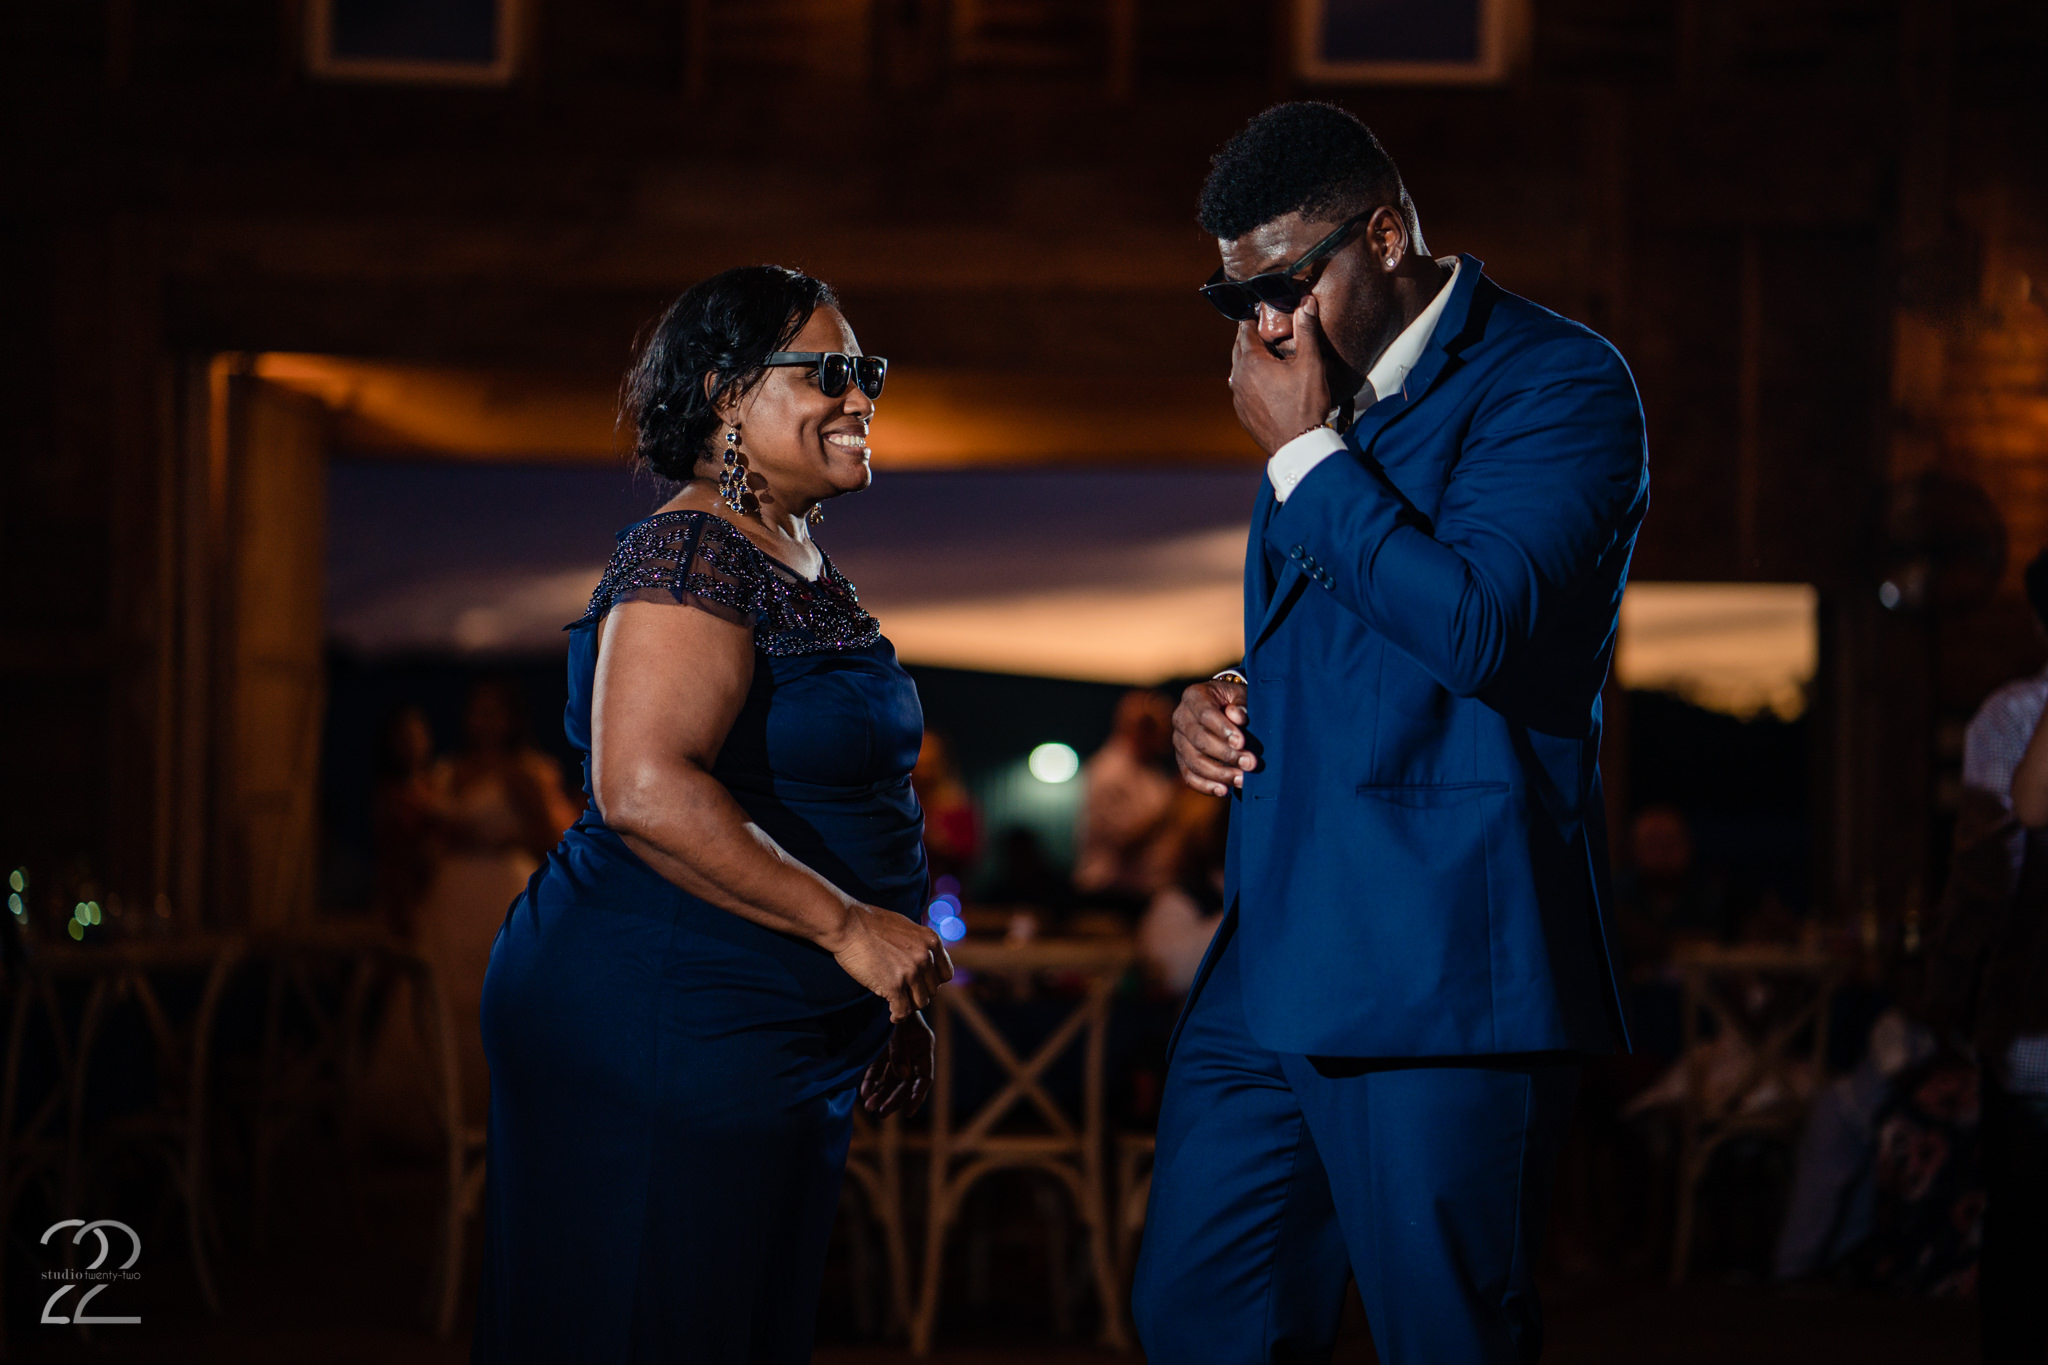 Mother Son Dance at Round Barn Wedding